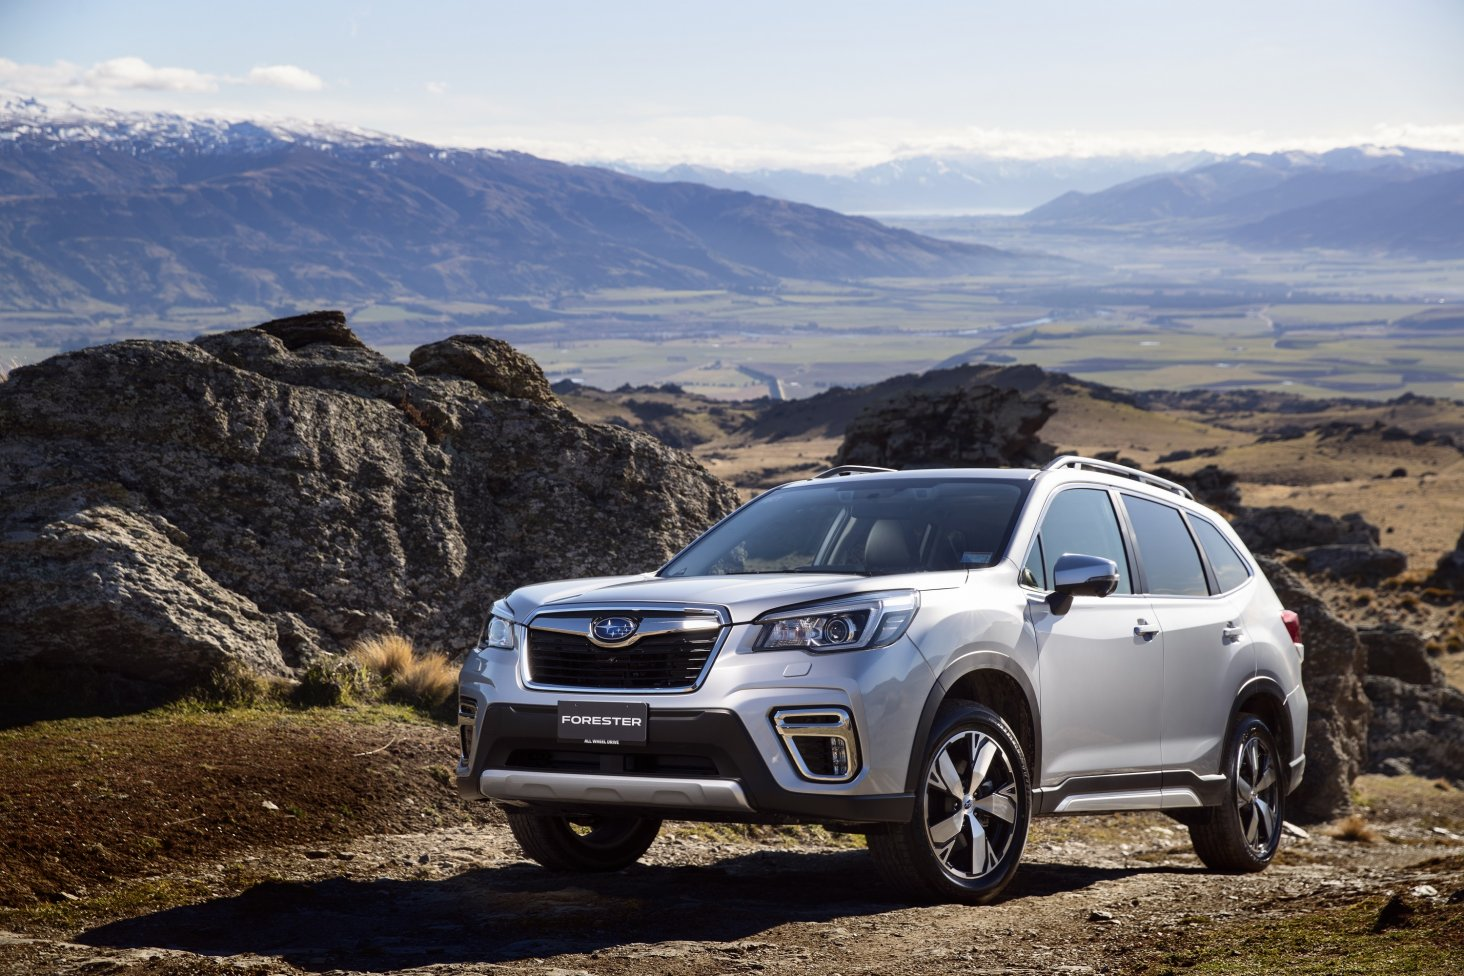 Subaru's Forester received the inaugural AA Driven New Zealand Car of the Year Awards Best in Class Medium SUV honours tonight.